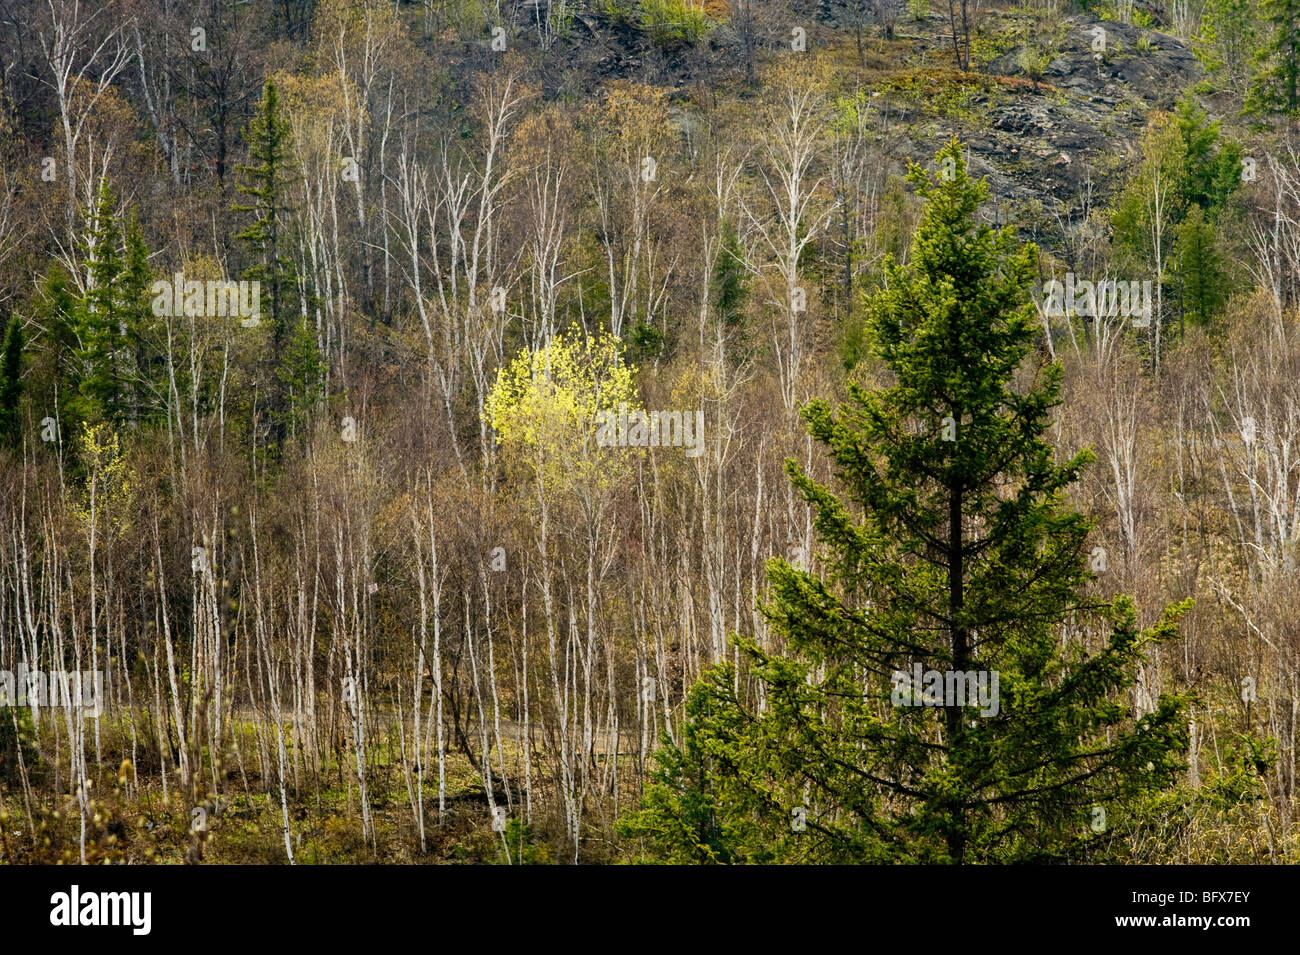 Hillside with bare birch trees and emerging foliage in aspens, Greater Sudbury, Ontario, Canada - Stock Image